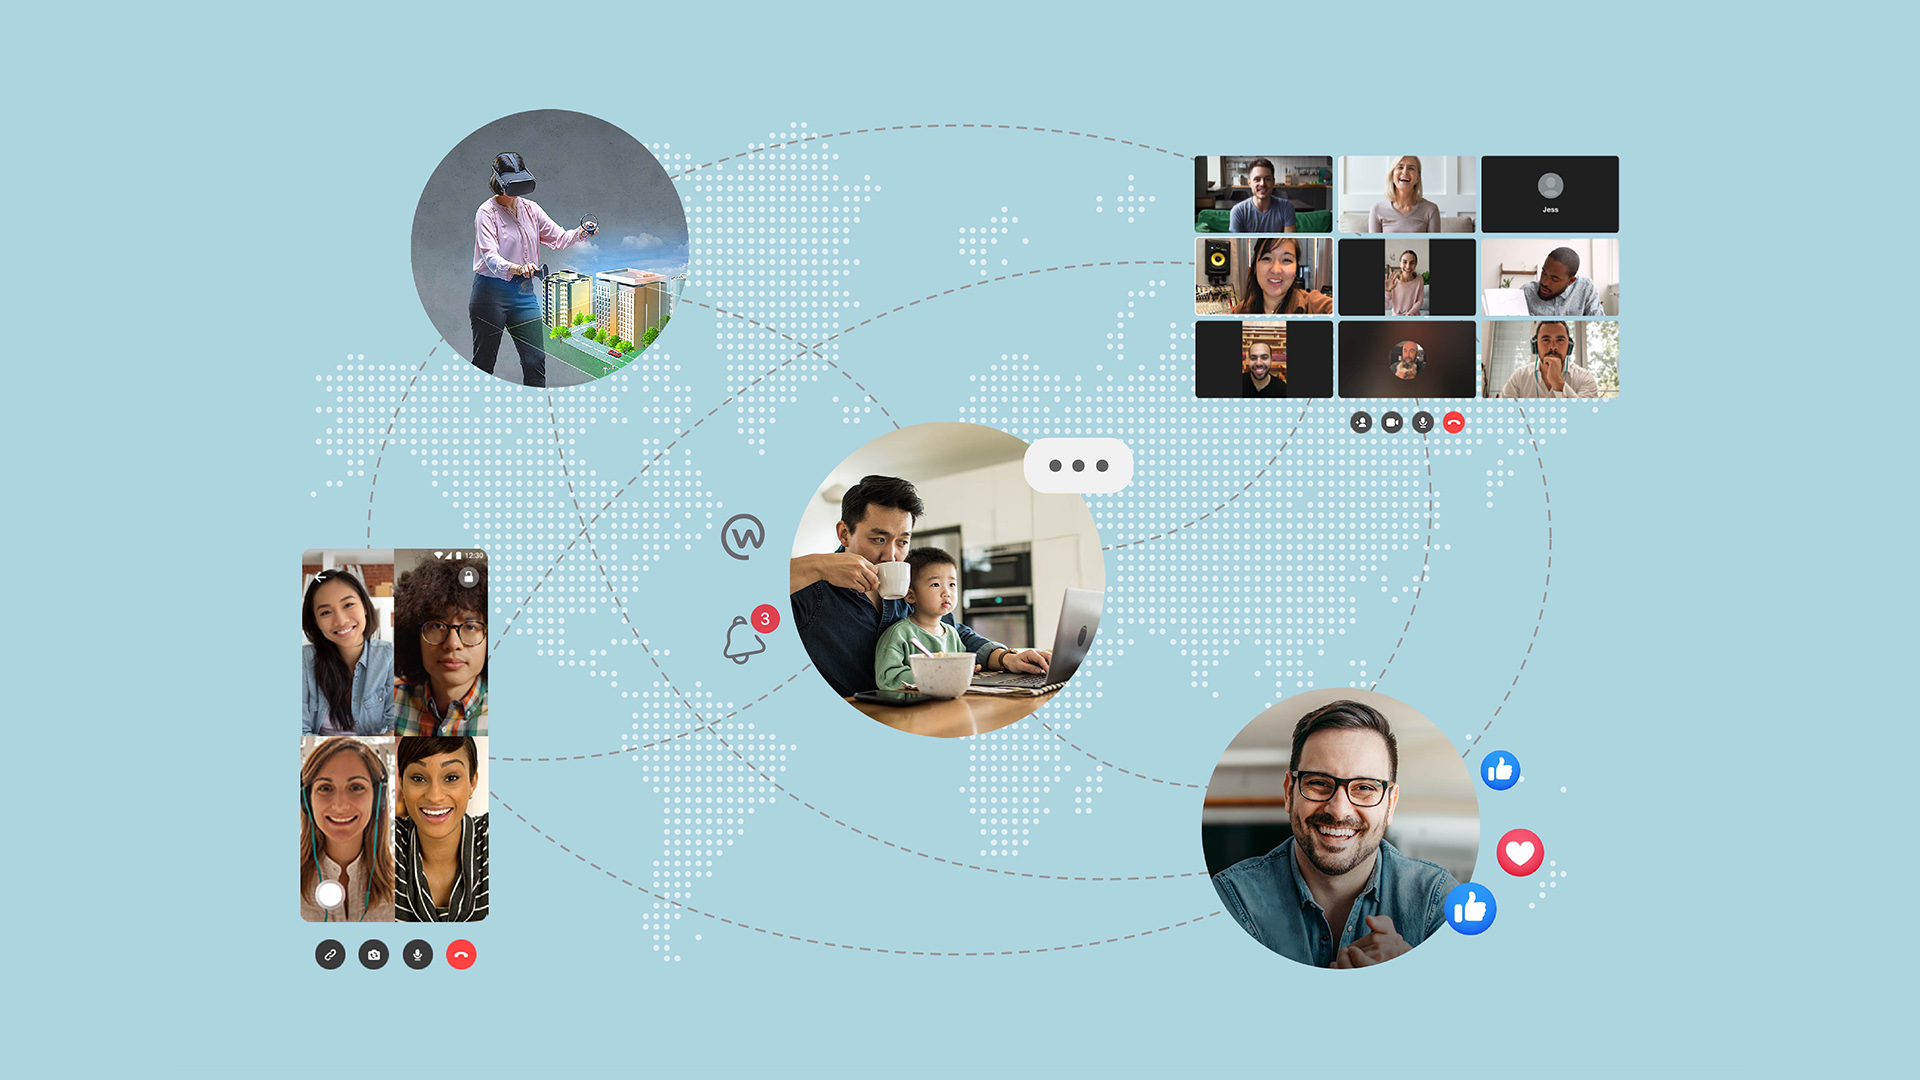 Photos showing people working remotely and staying connected in different ways, such as through Workplace chat, group video calls, Live videos and more.